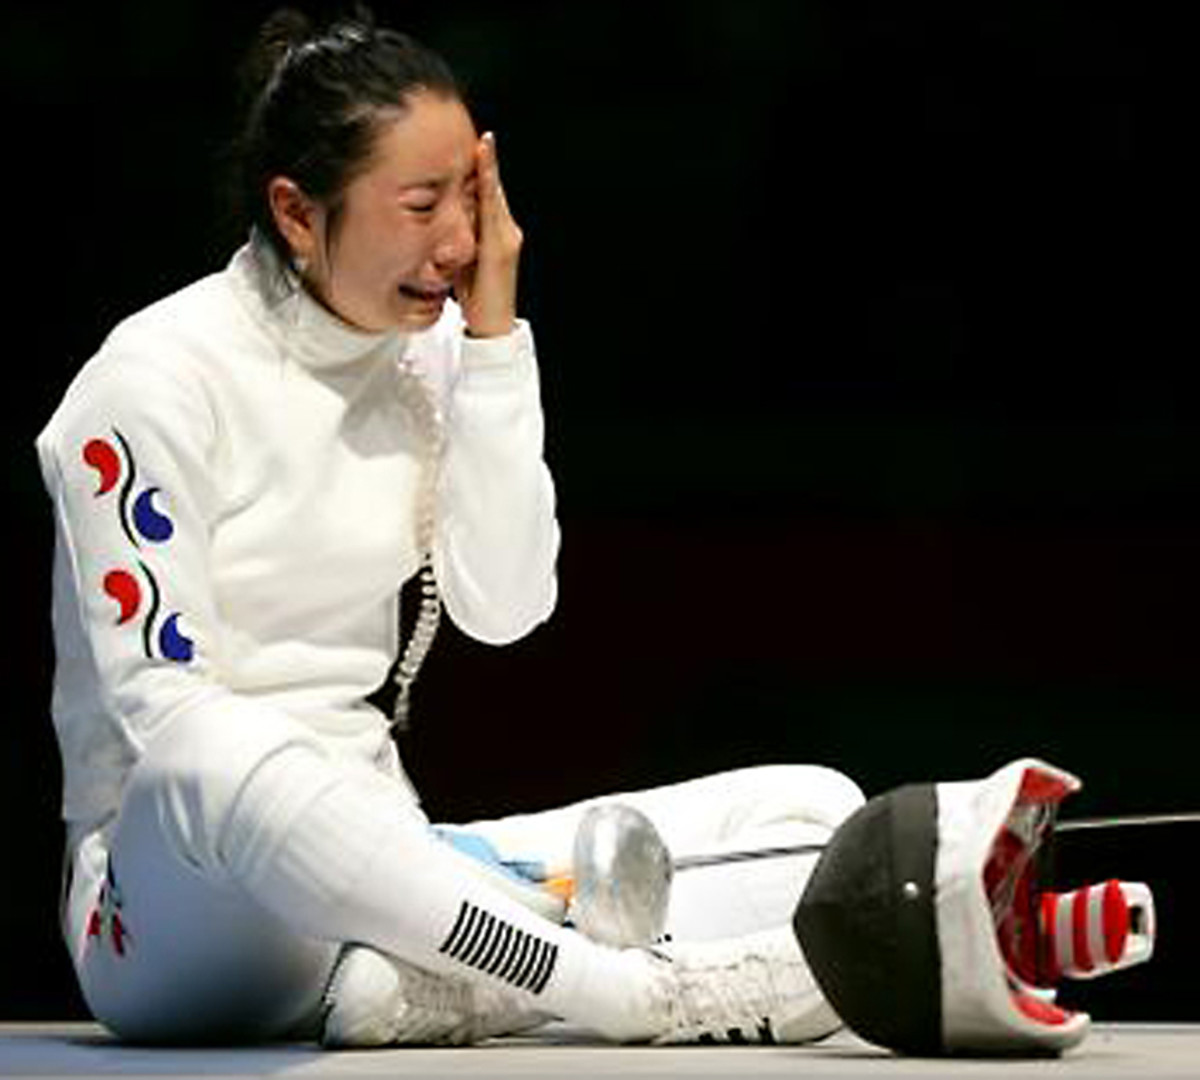 South Korea's Shin A-Lam in floods of tears after a purely technical infringement led to her disqualification in a fencing contest